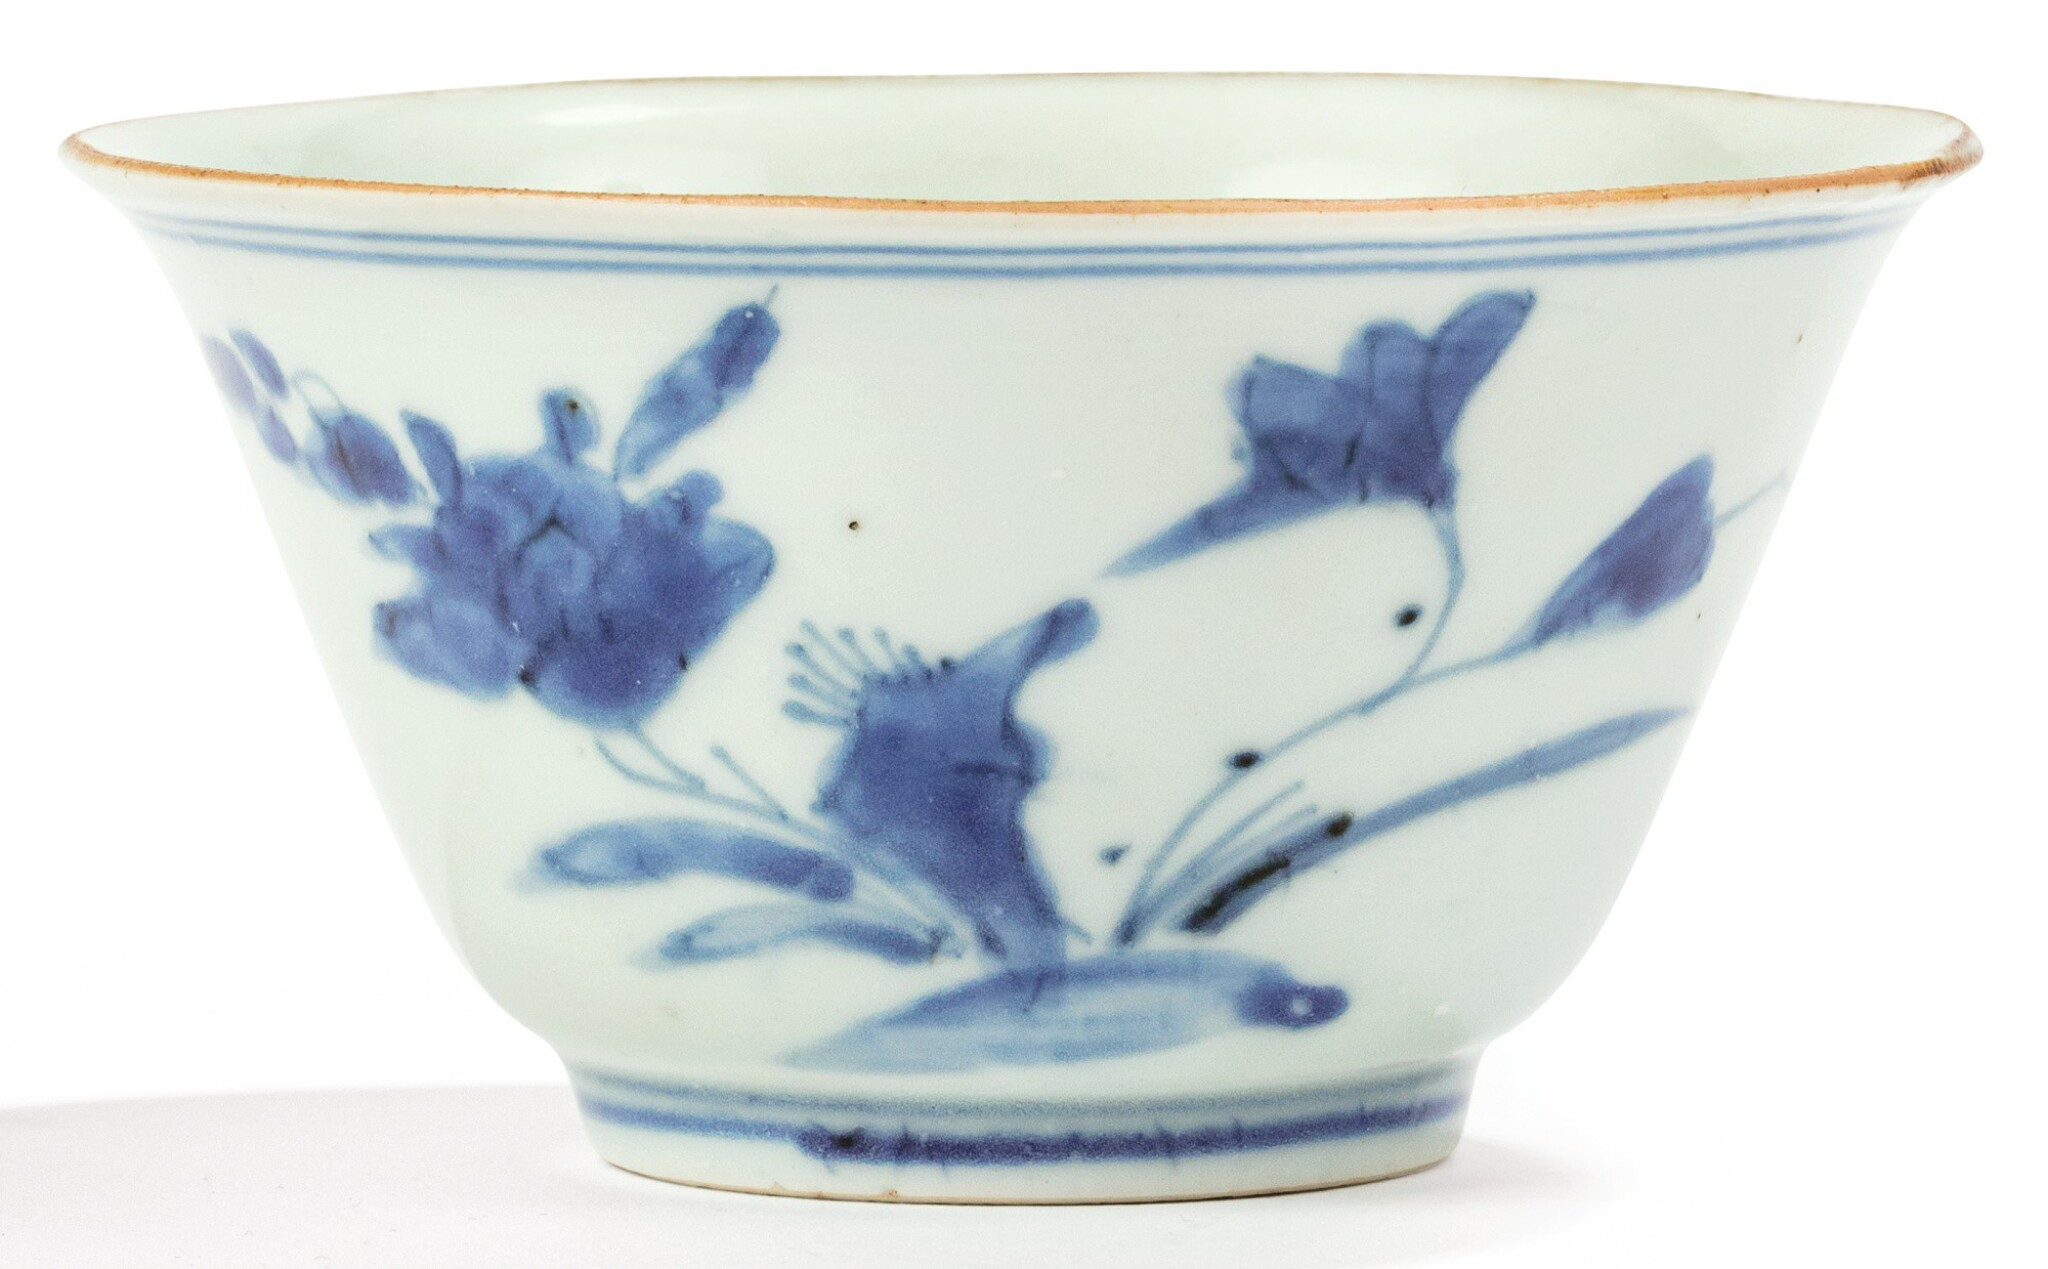 View 1 of Lot 1. RARE BOL EN PORCELAINE BLEU ET BLANC DYNASTIE QING, DATÉ 1666 |  清康熙 青花蝶戀花紋盃 《大清丙午年製》款 | A blue and white bowl, Qing Dynasty, dated 1666.